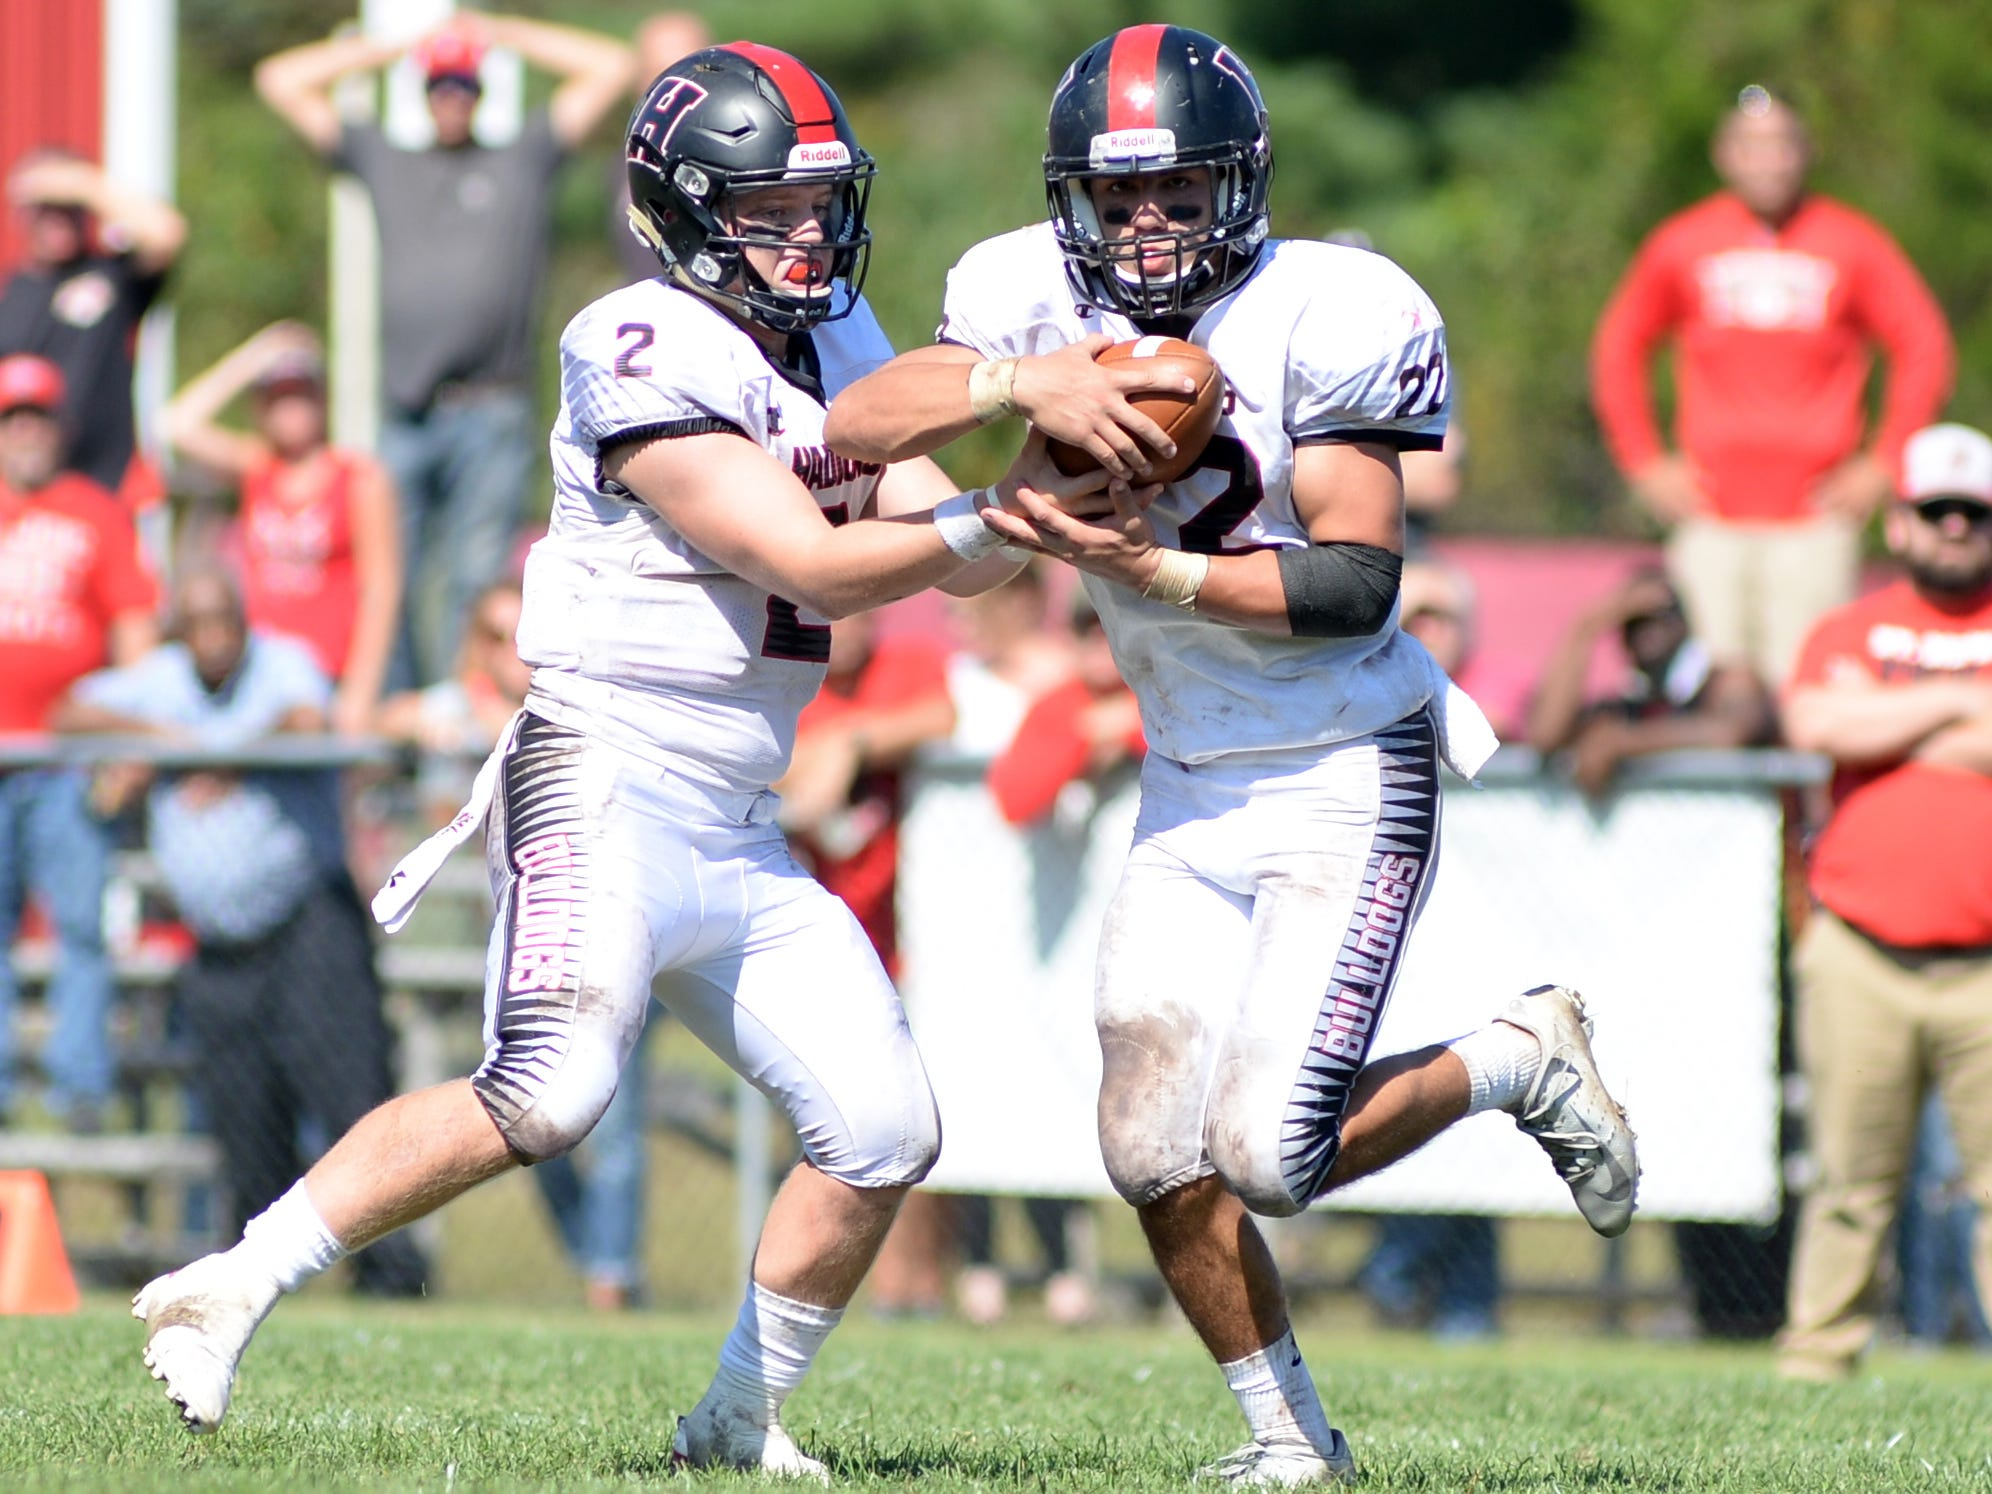 Haddonfield quarter back Jay Foley hands off to Chris Brown during Saturday's game against St. Joseph, Sept. 29, 2018.